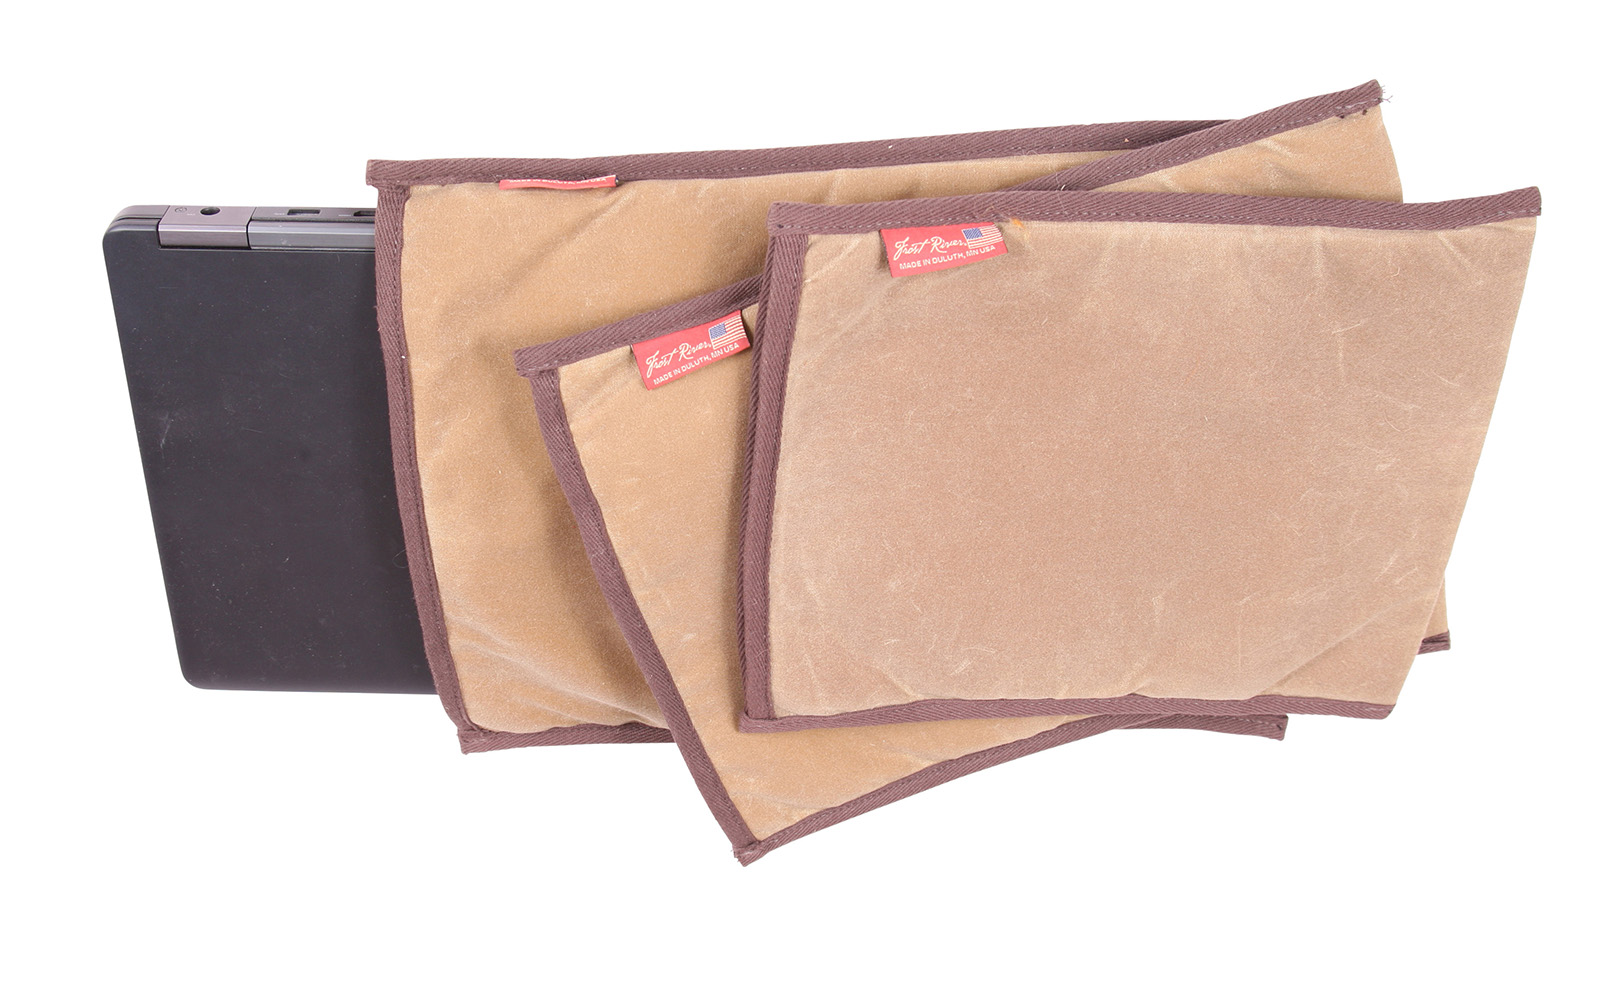 Frost River - Lap Top Sleeve Medium